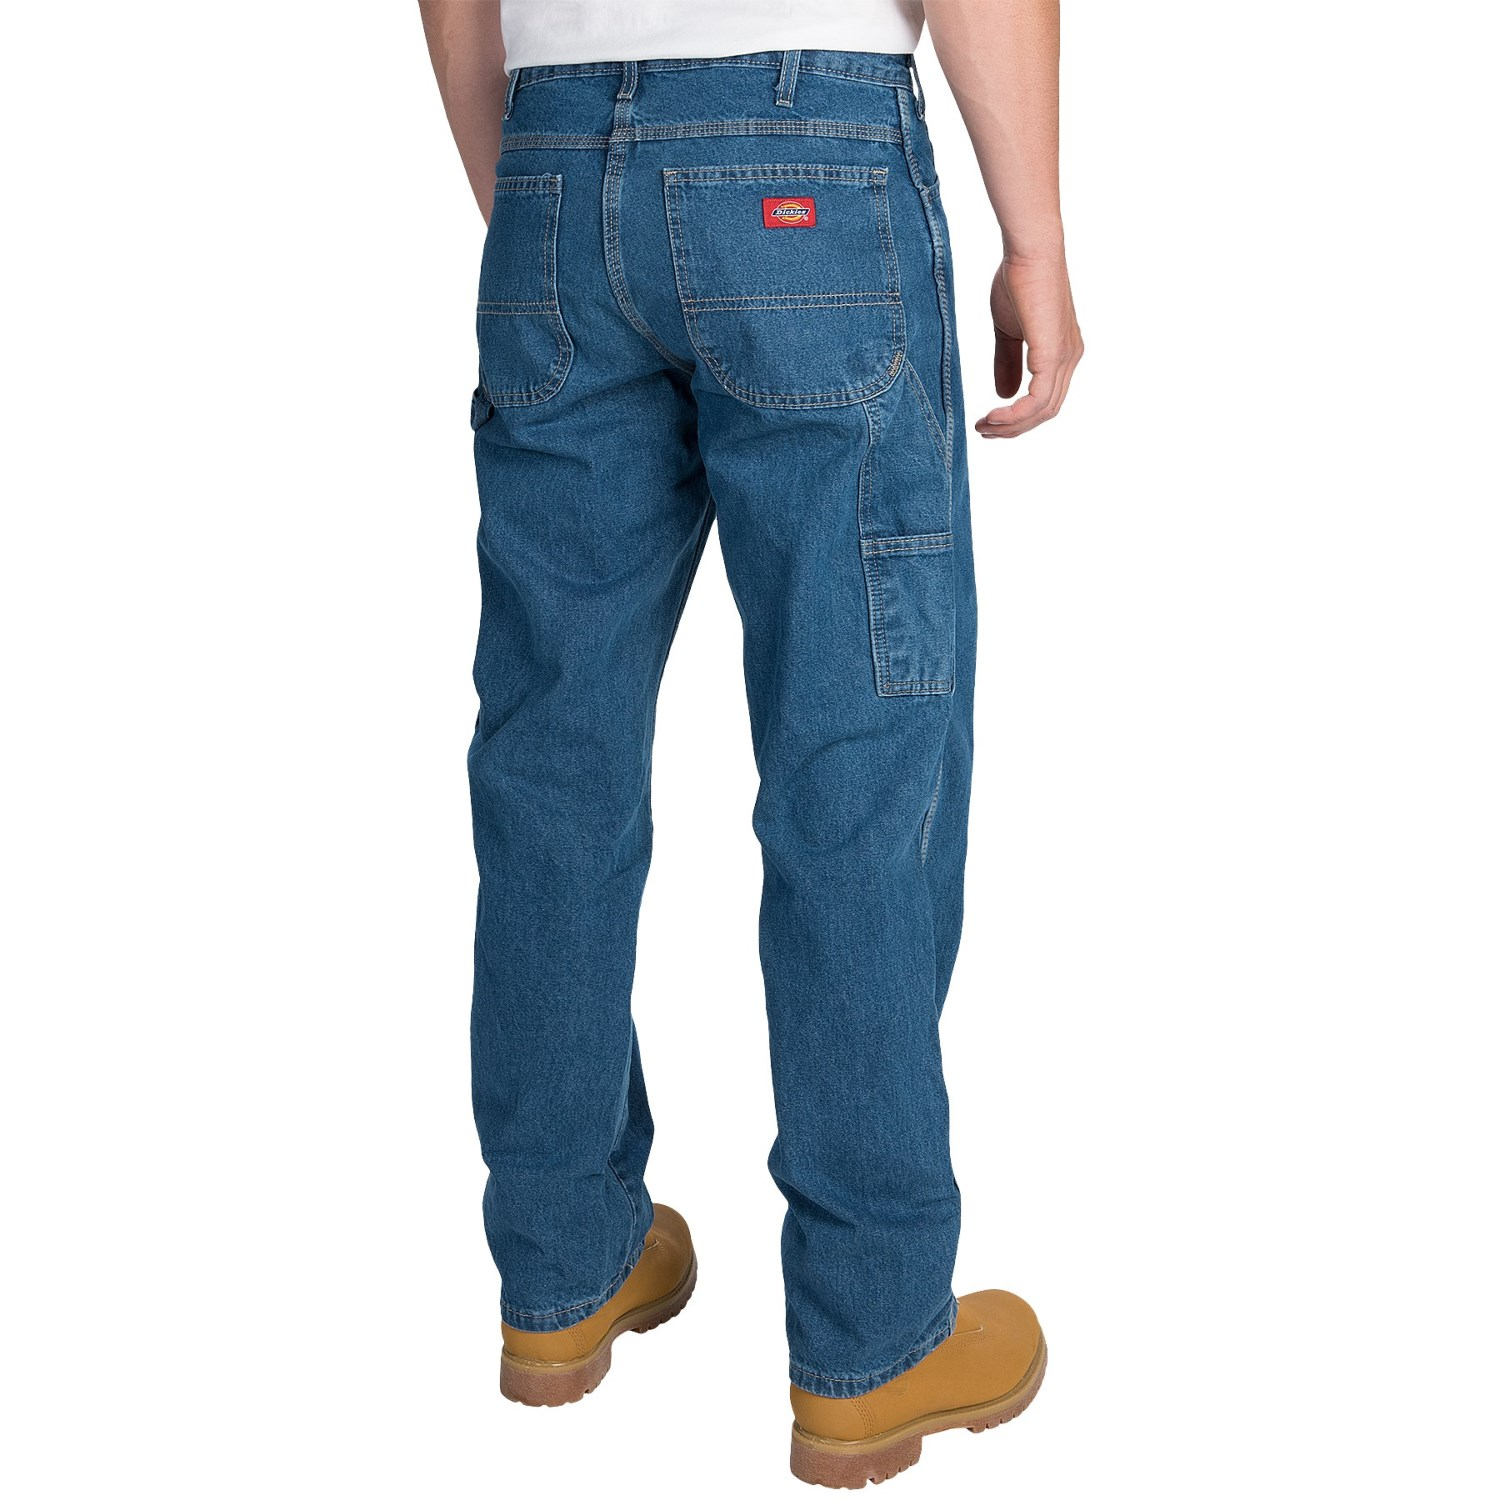 Dickies Carpenter Jeans (For Men) - Save 50%